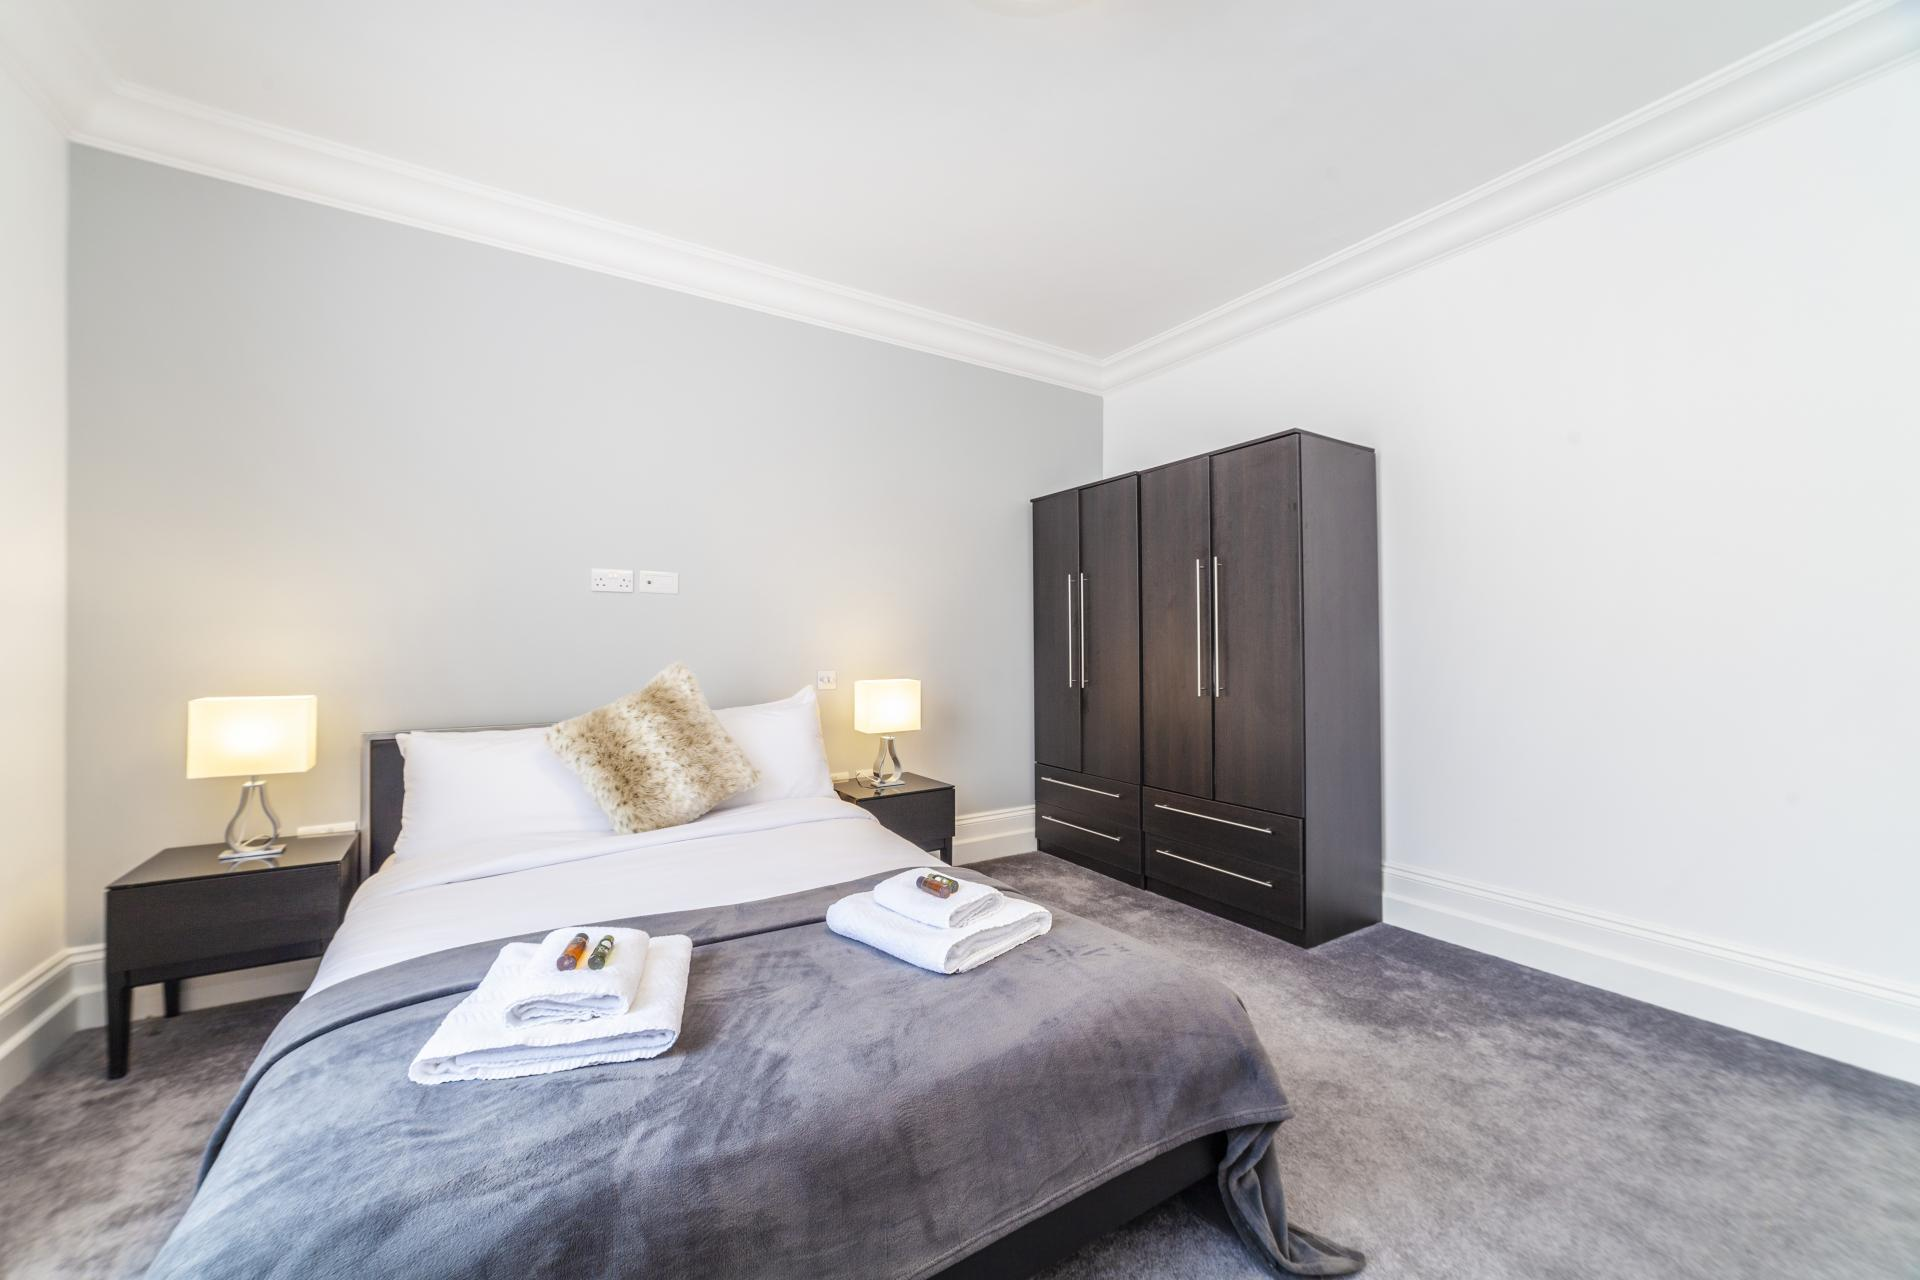 Wardrobe at Devonshire Terrace Apartments, Bayswater, London